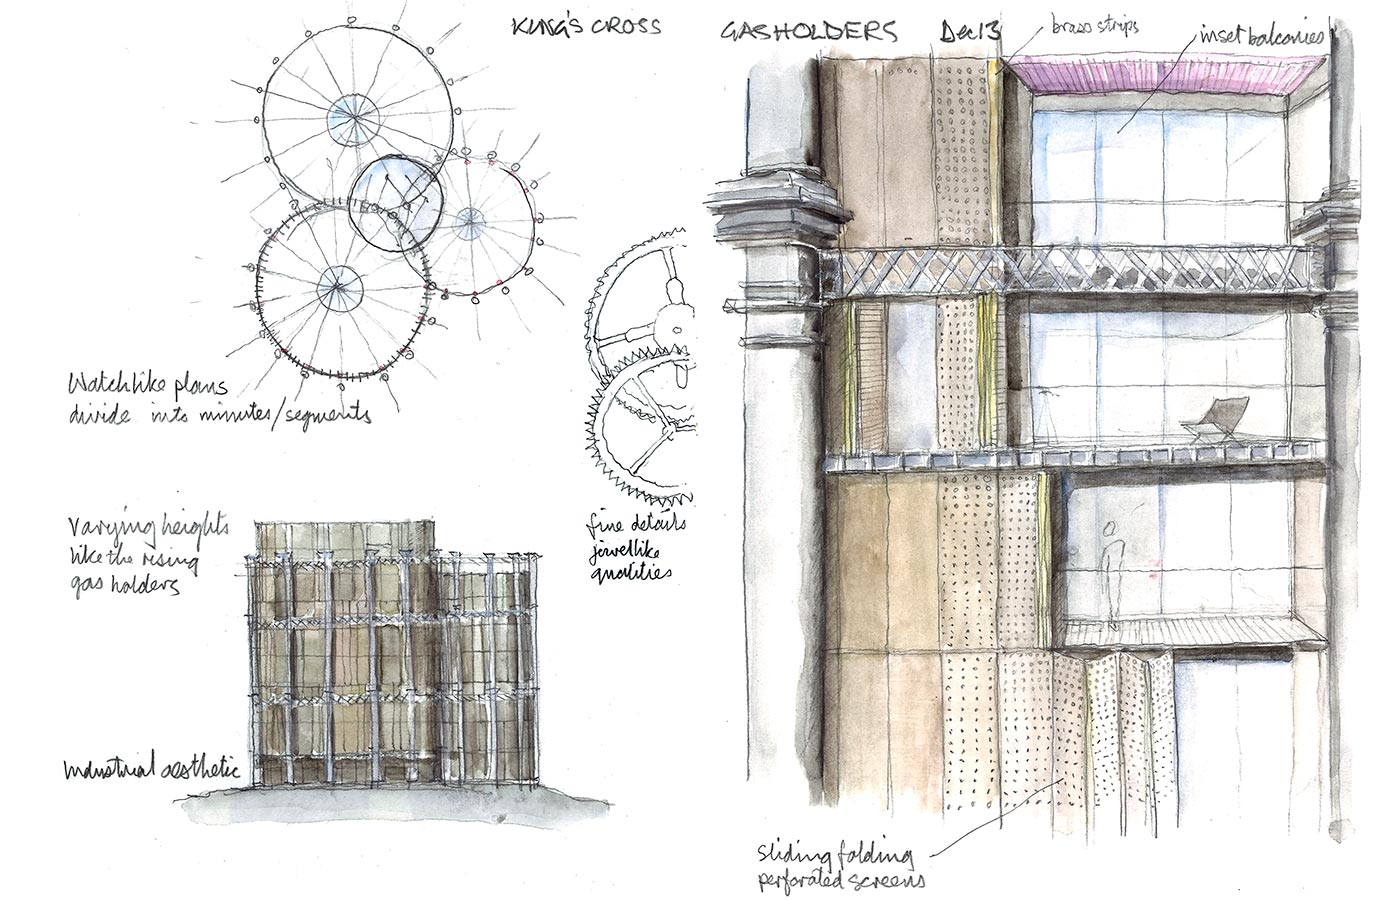 Similarly At Kings Cross We Are Working On The Design For Gasholder Triplet Which Has Apartments Constructed Within Cast Iron Frameworks